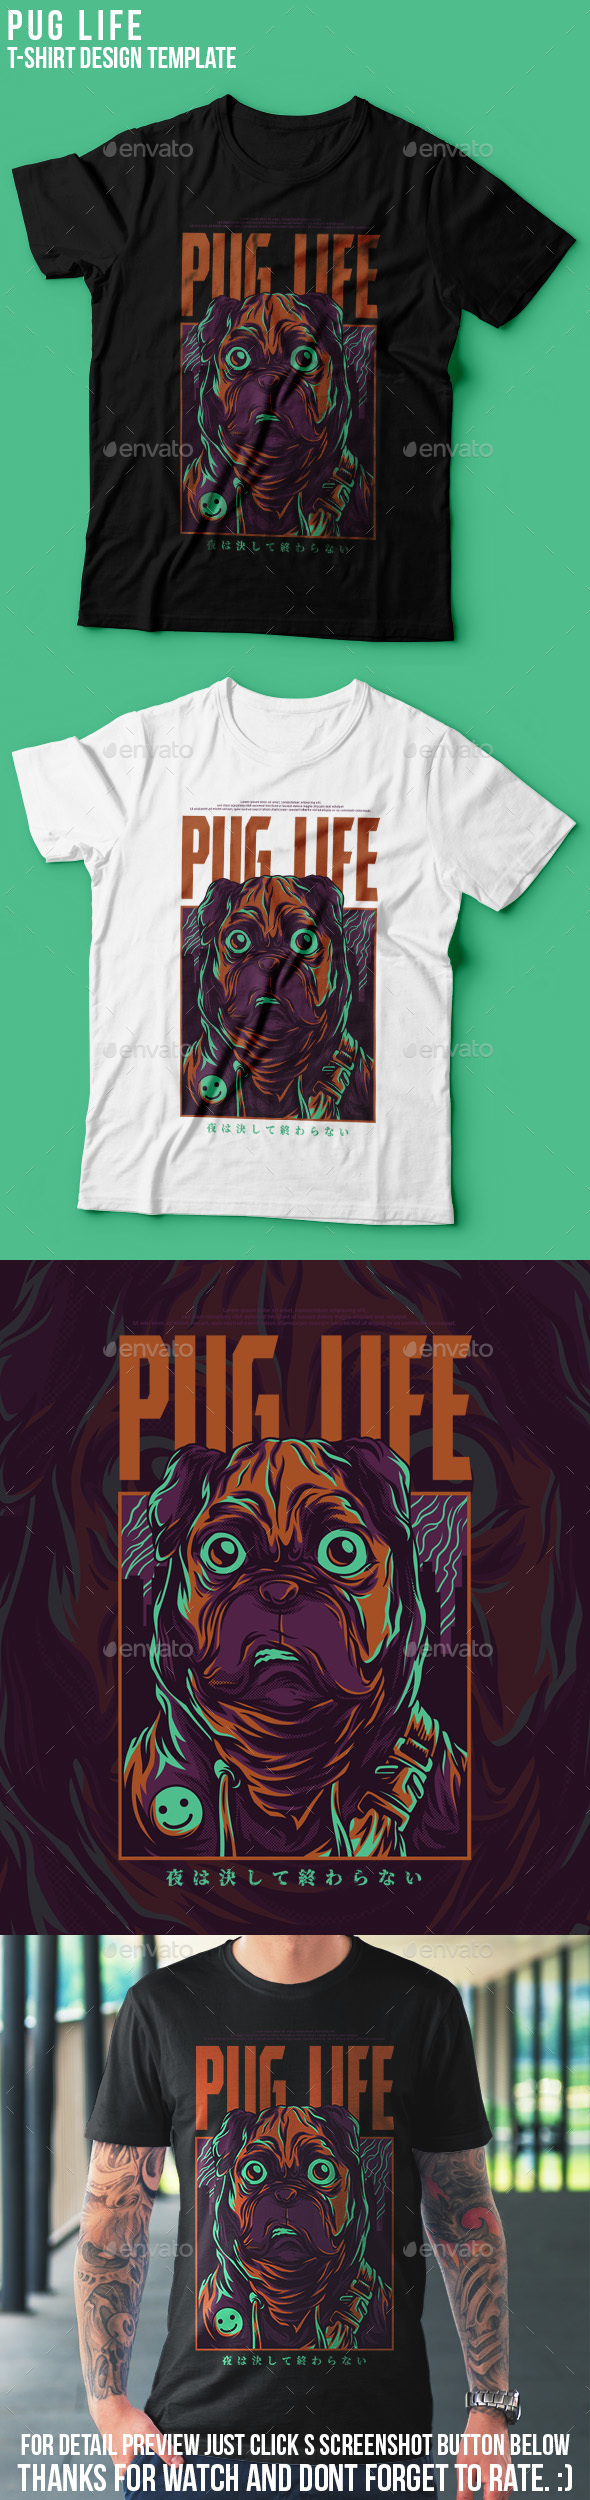 Customisable T Shirt Designs From Graphicriver